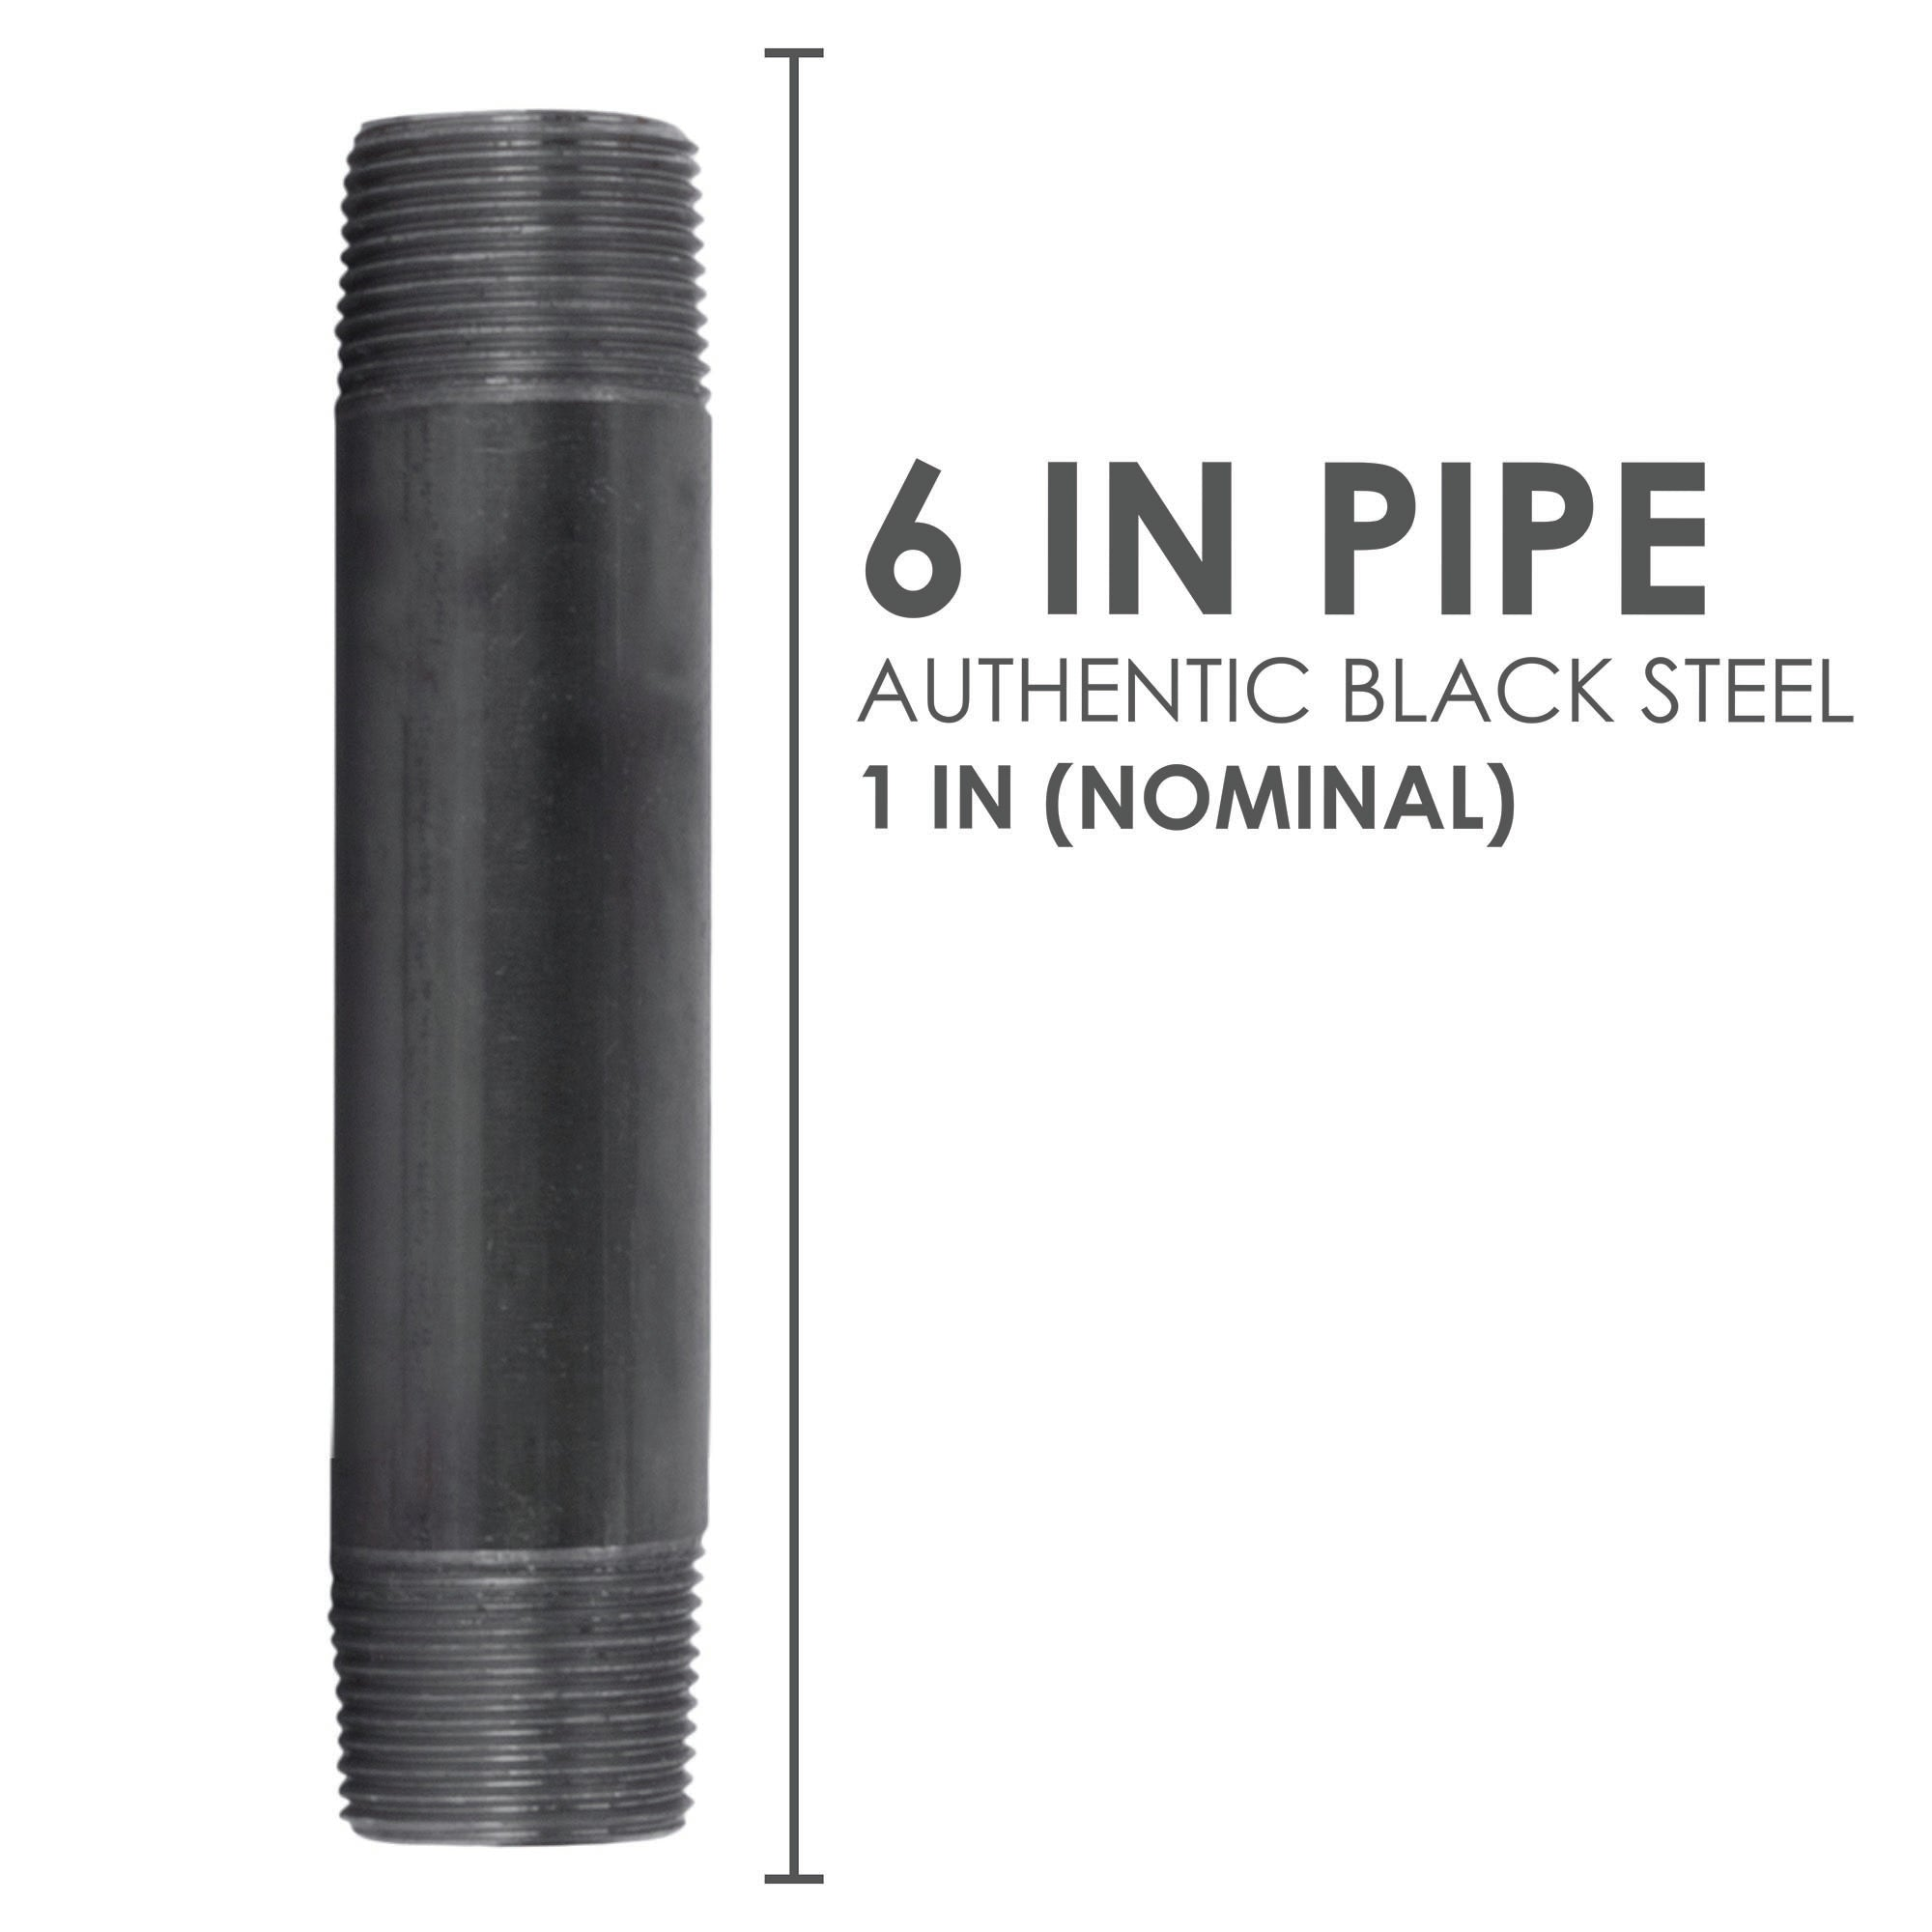 1 In X 6 In Black Pipe - Pipe Decor